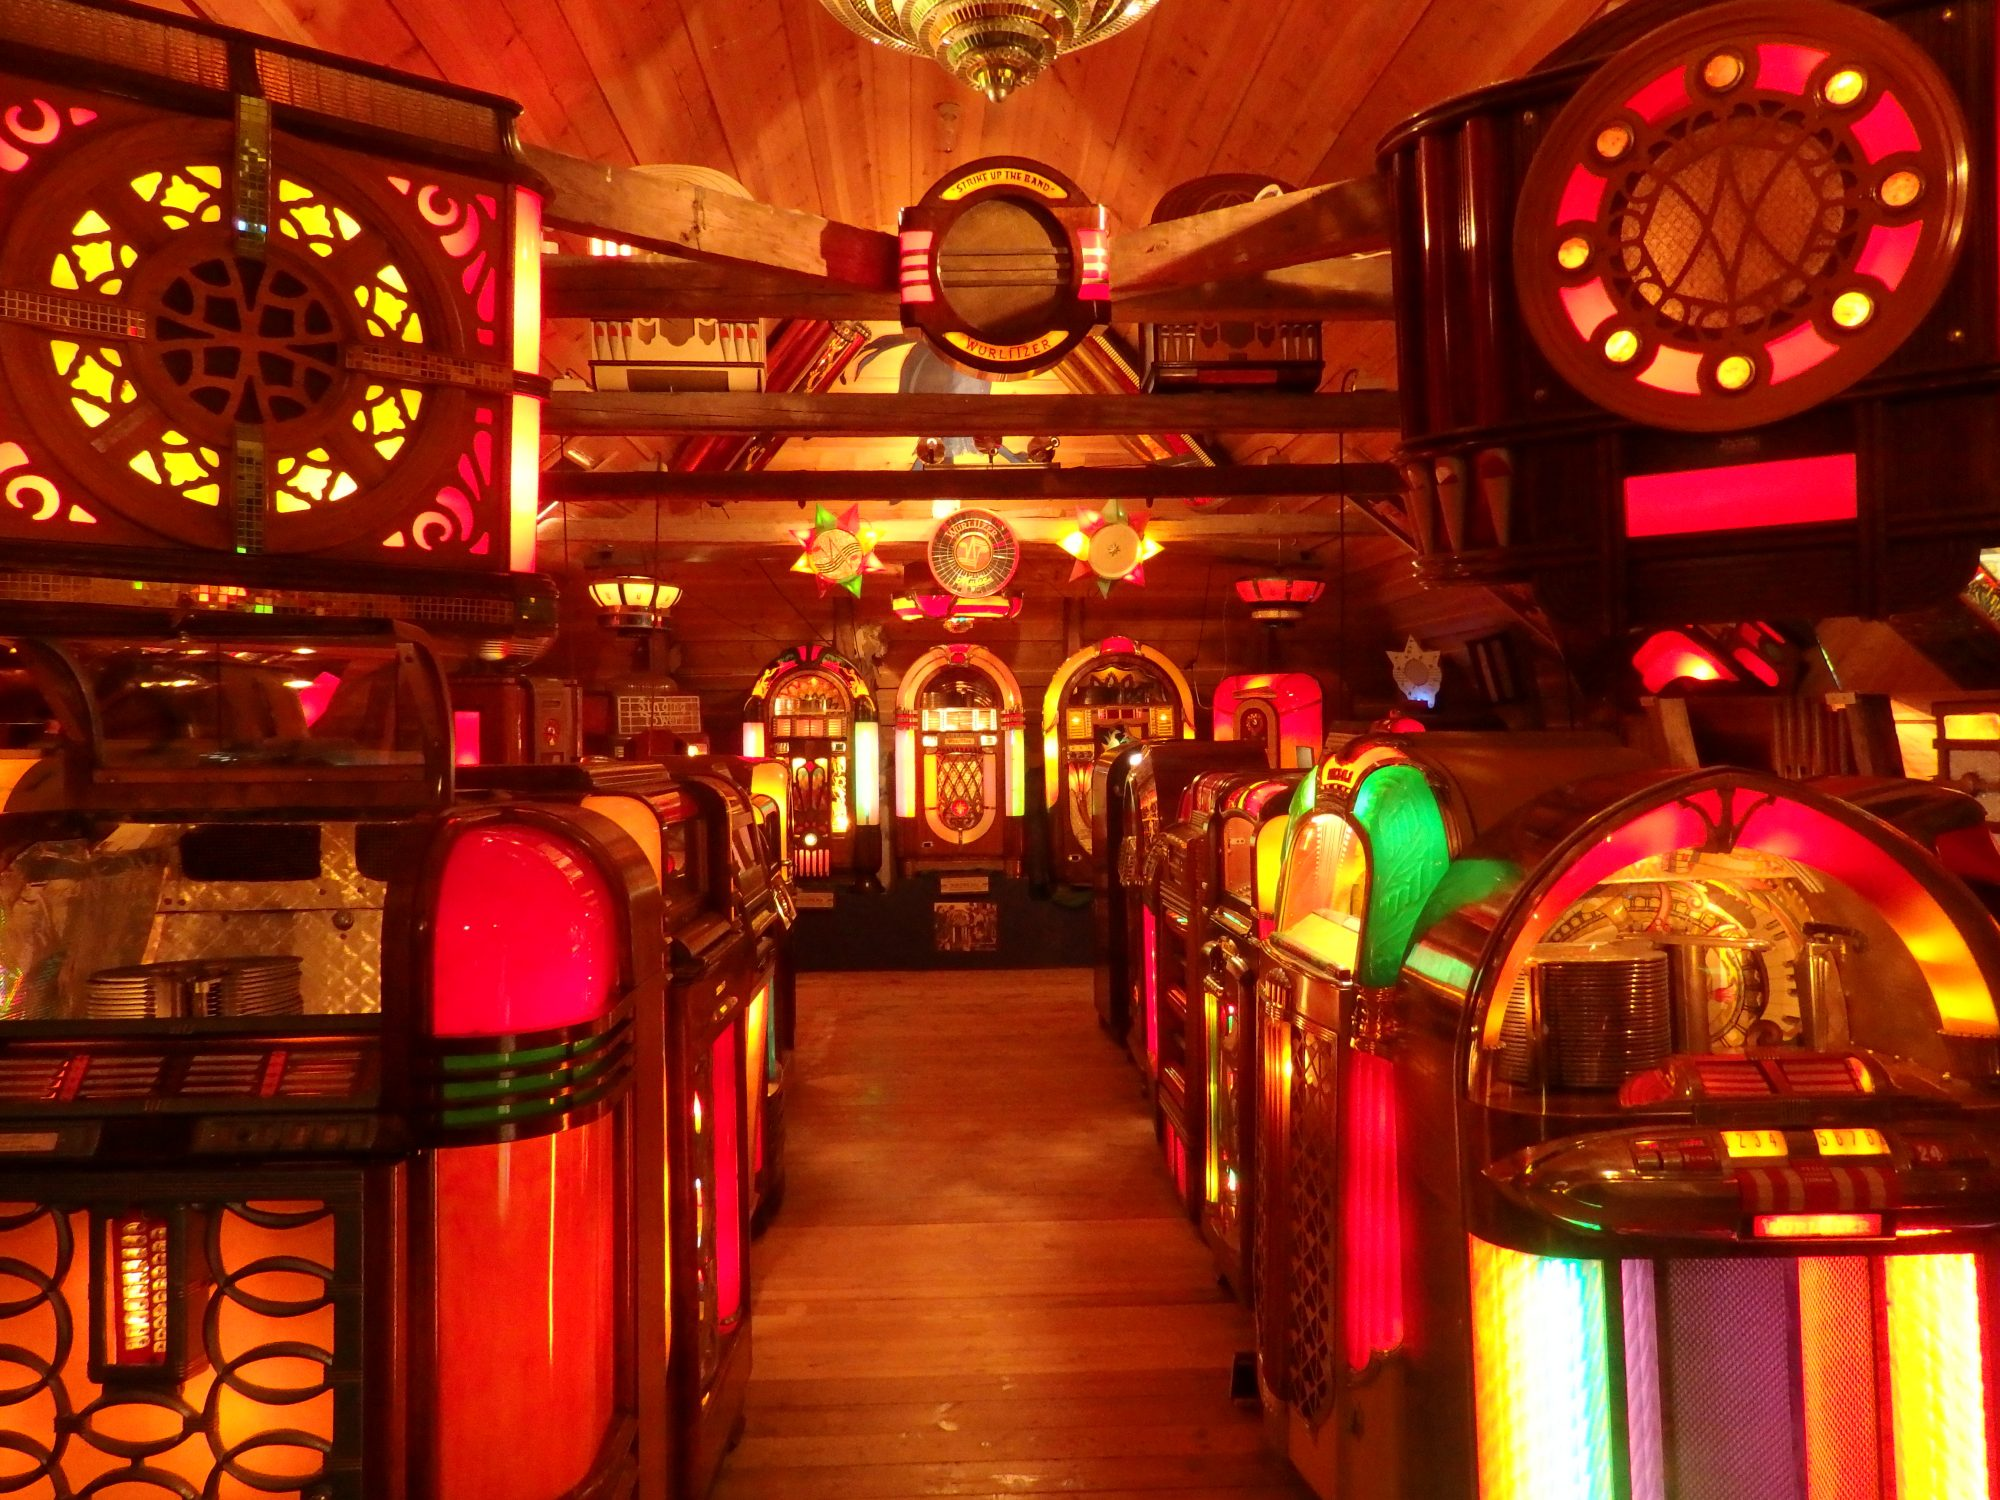 one of several rooms containing what the owners claim to be the biggest jukebox collection in Europe, in Sparreholm manor, Sormland, Sweden